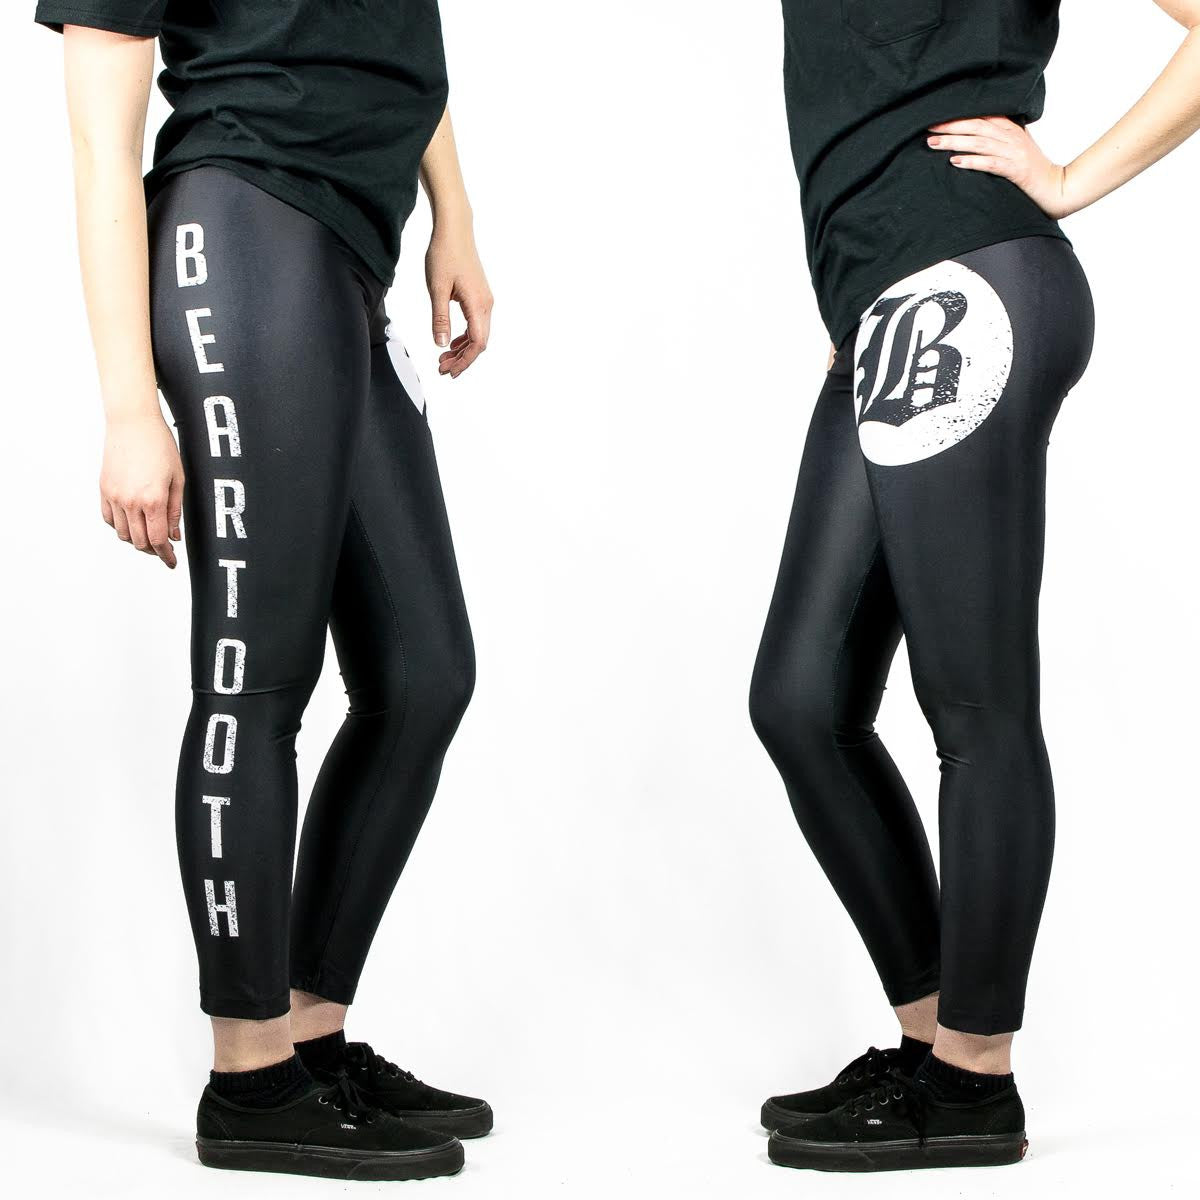 Beartooth - Logo Leggings - Merch Limited